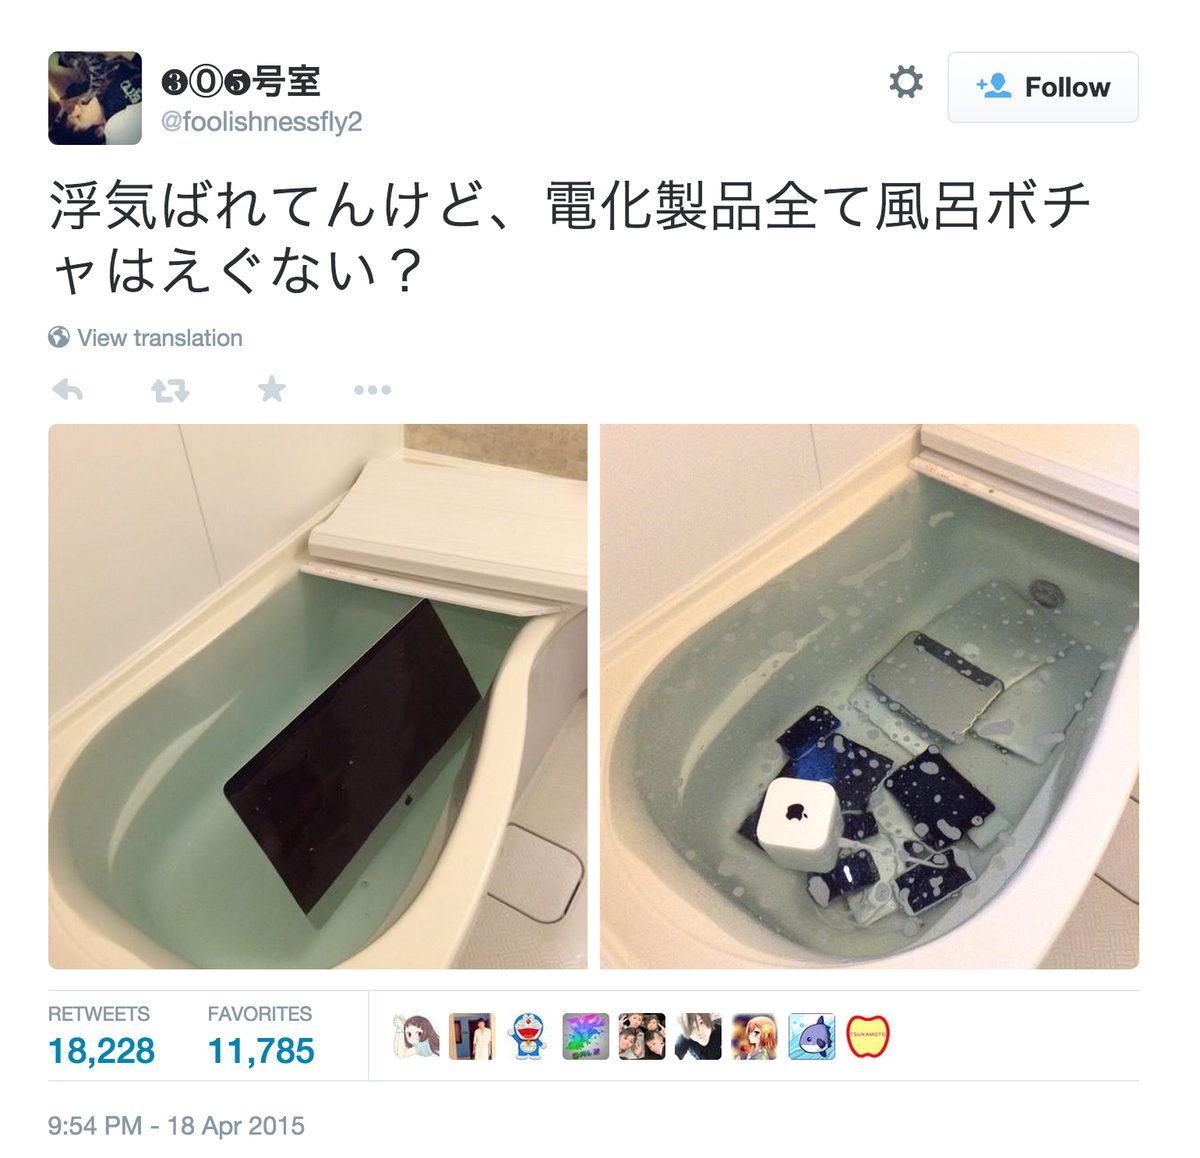 From the Japanese interwebs today: a girl caught her boyfriend cheating so she dumped all his Apple gear in the bath. http://t.co/6MCyxgMWvg